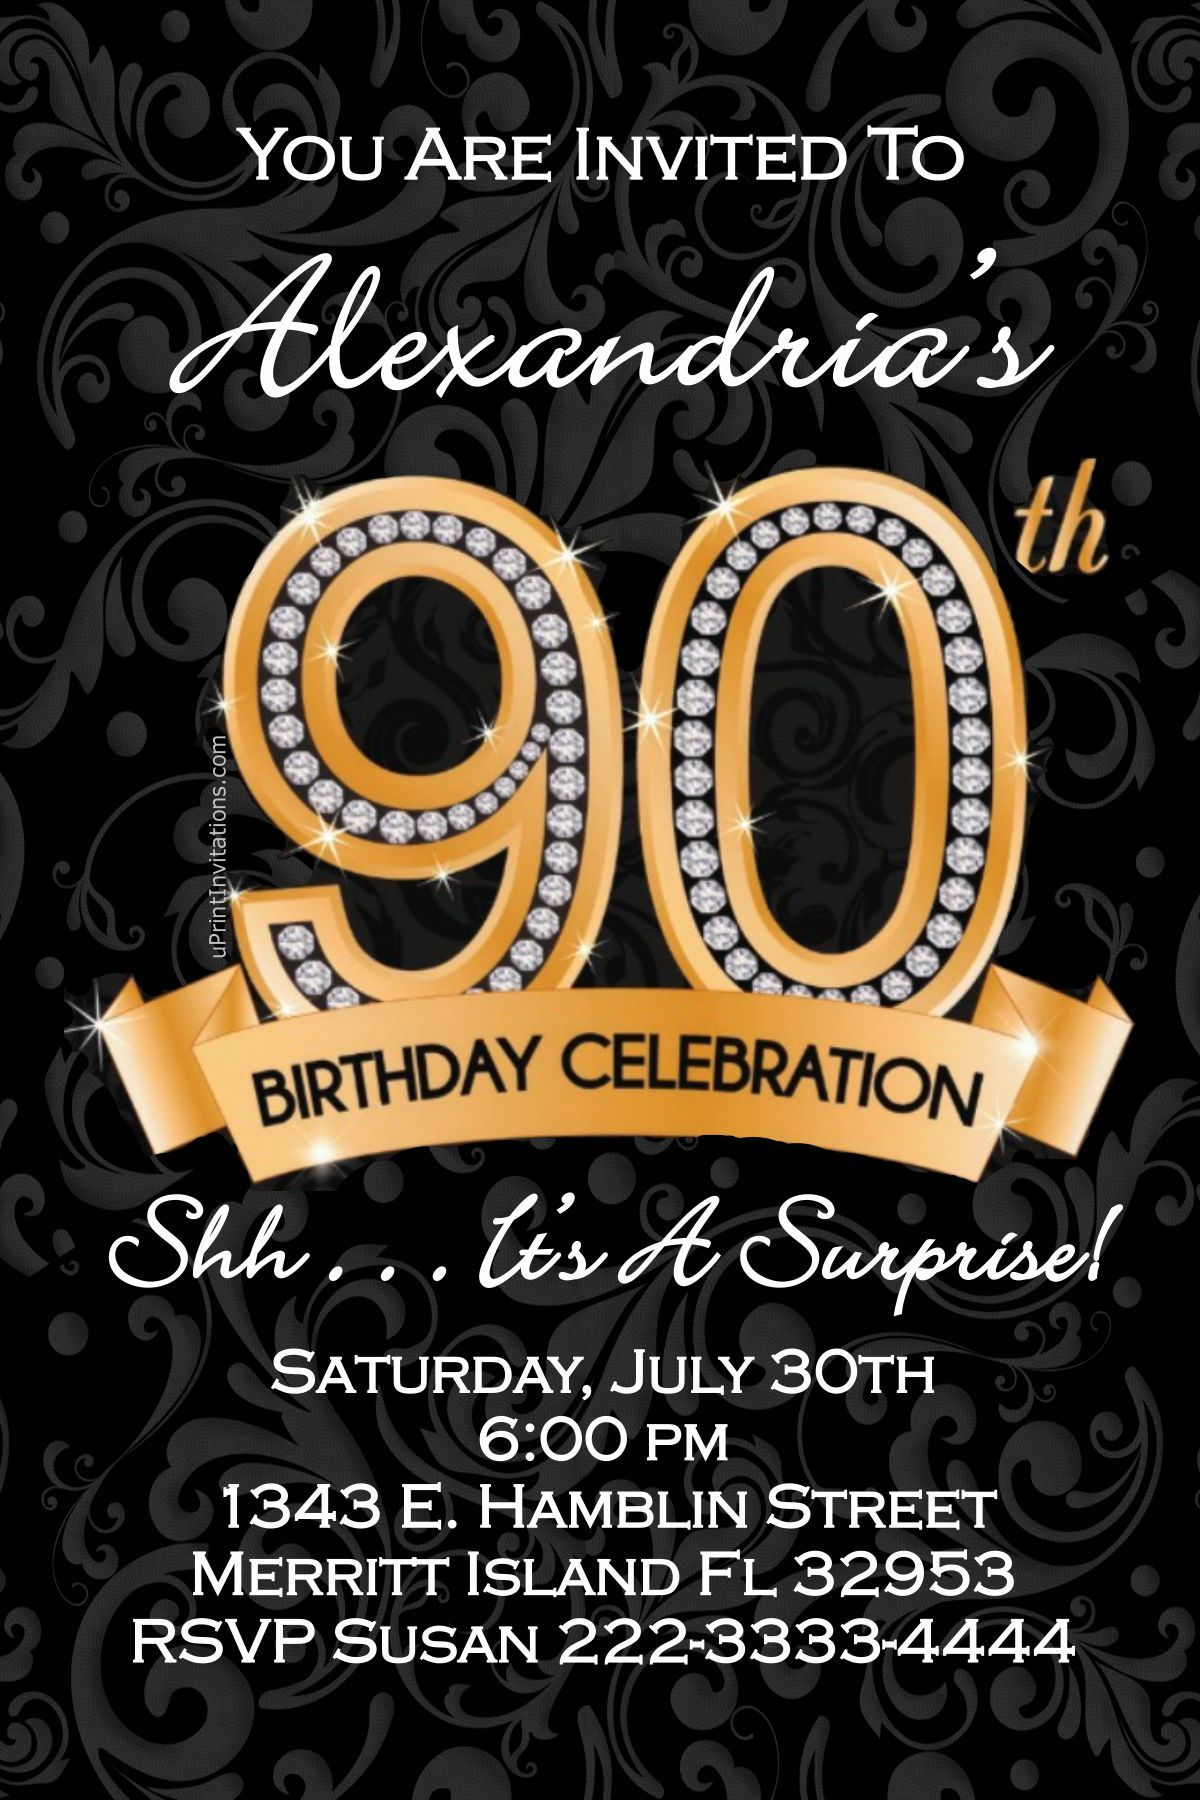 90th Birthday Invitations - Digital Download - Get these invitations ...